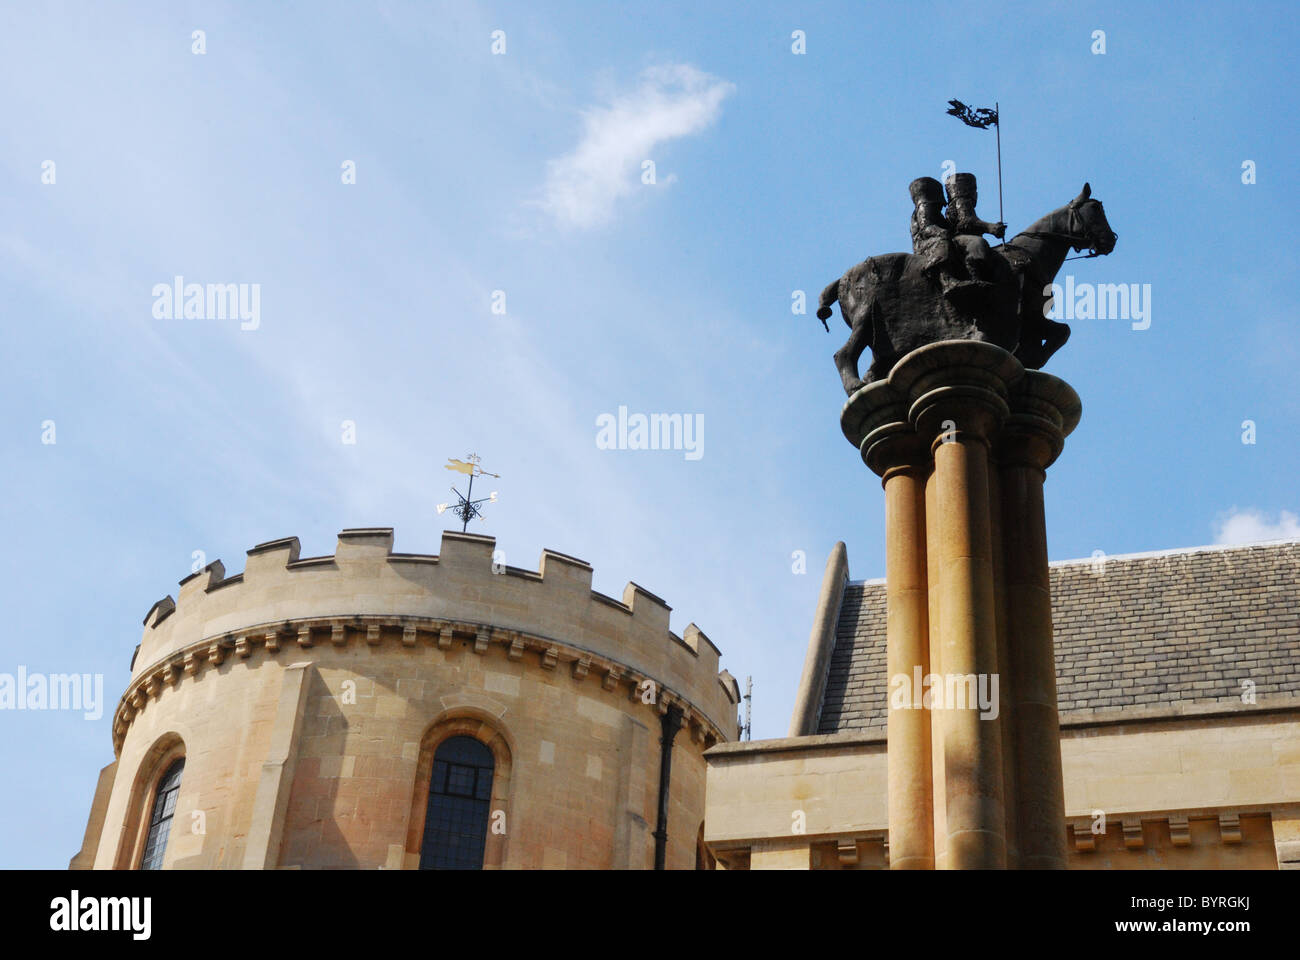 A statue of two knights on a horse, the emblem of the Templars, outside Temple Church in London - Stock Image